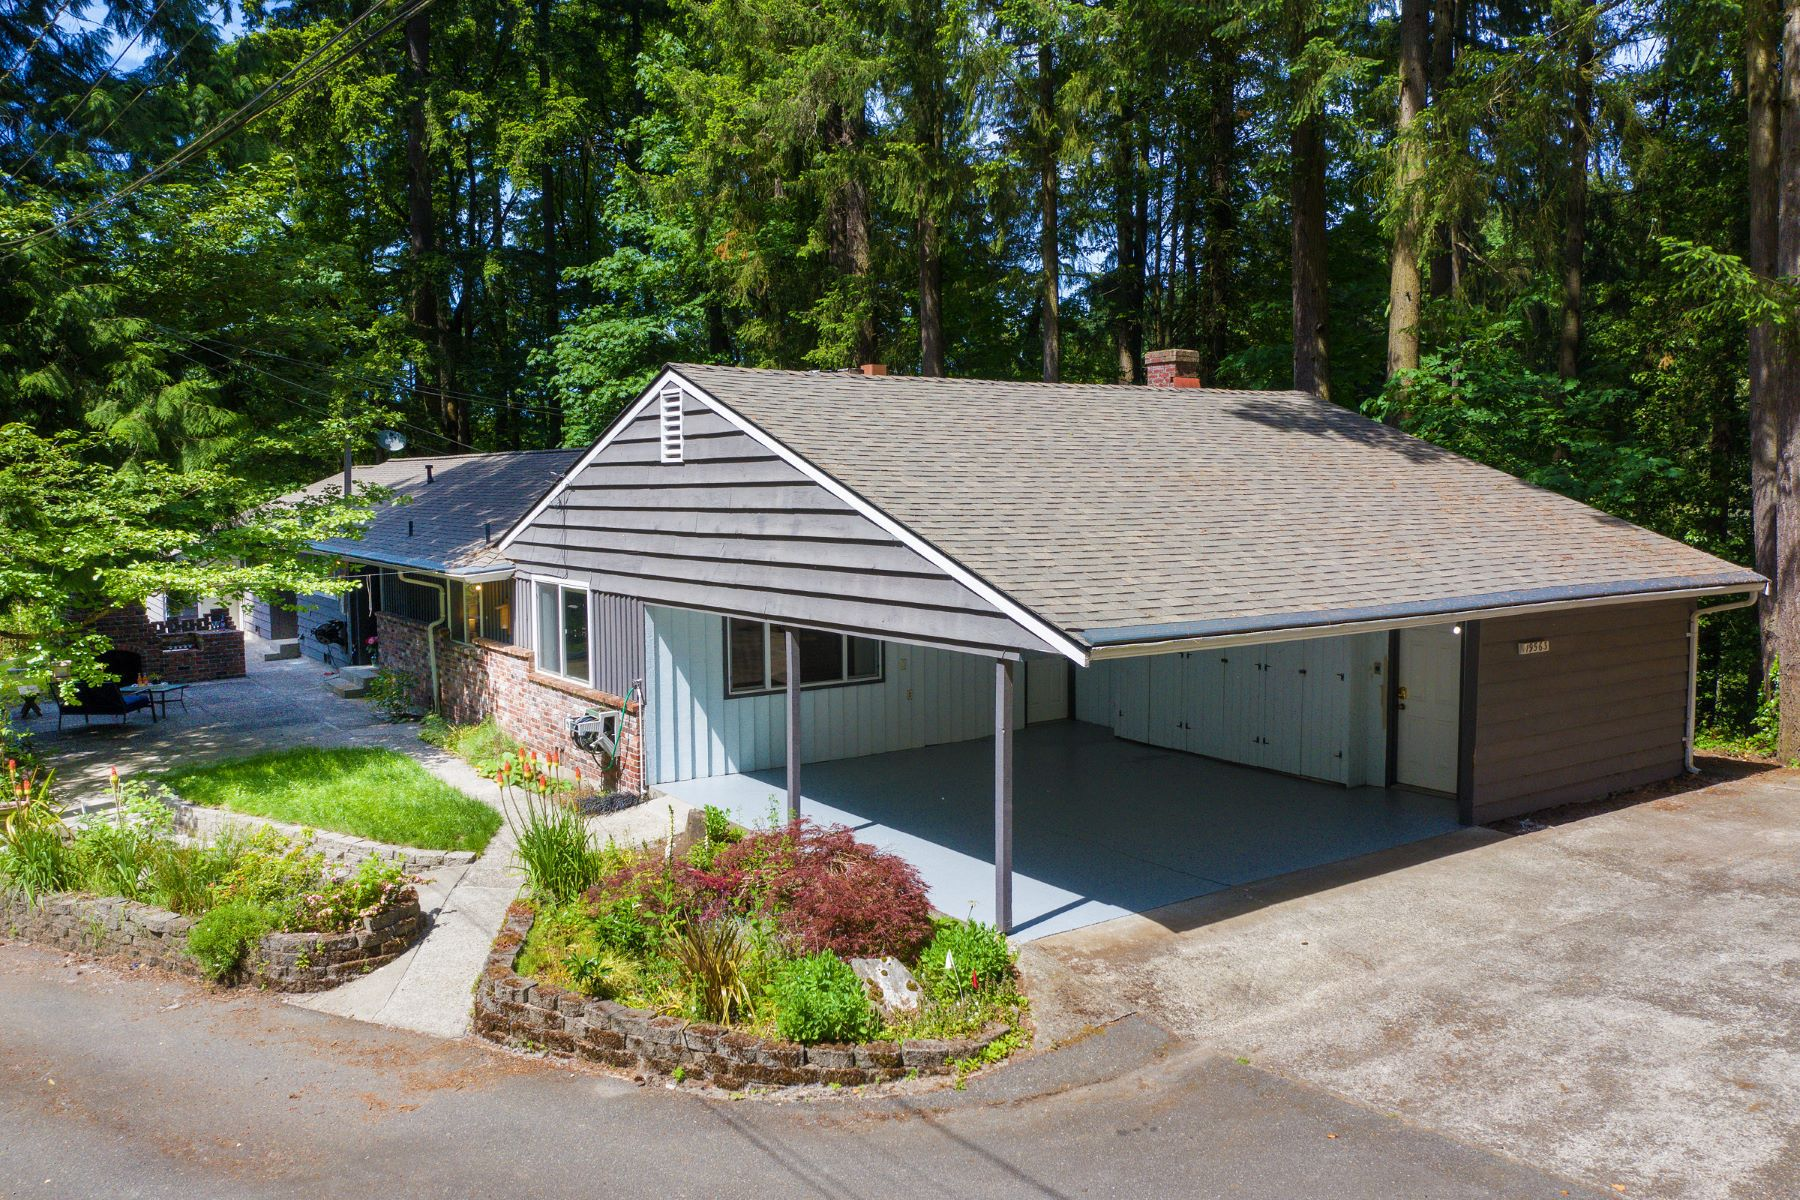 Single Family Homes for Sale at Mid Century Charmer in Lake Forest Park 19563 38th Ave NE, Lake Forest Park, Washington 98155 United States